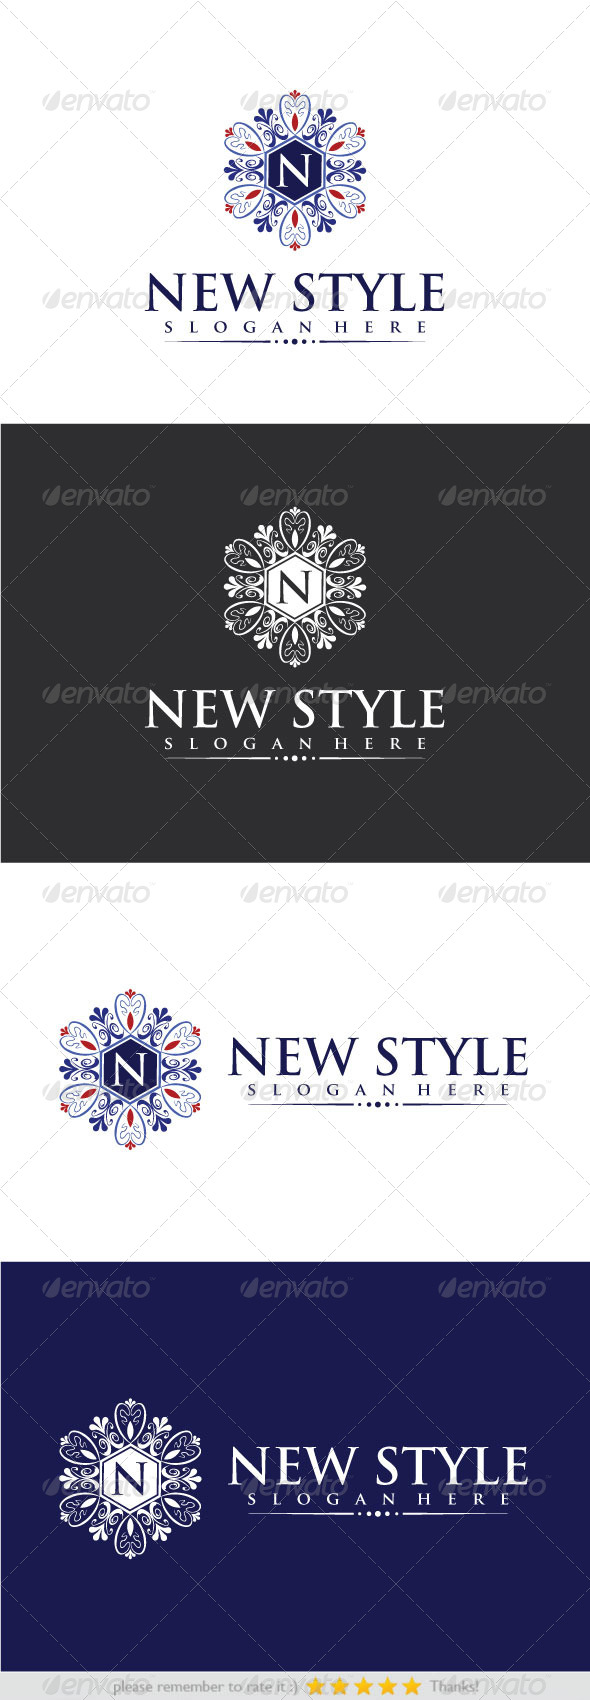 New Style - Crests Logo Templates